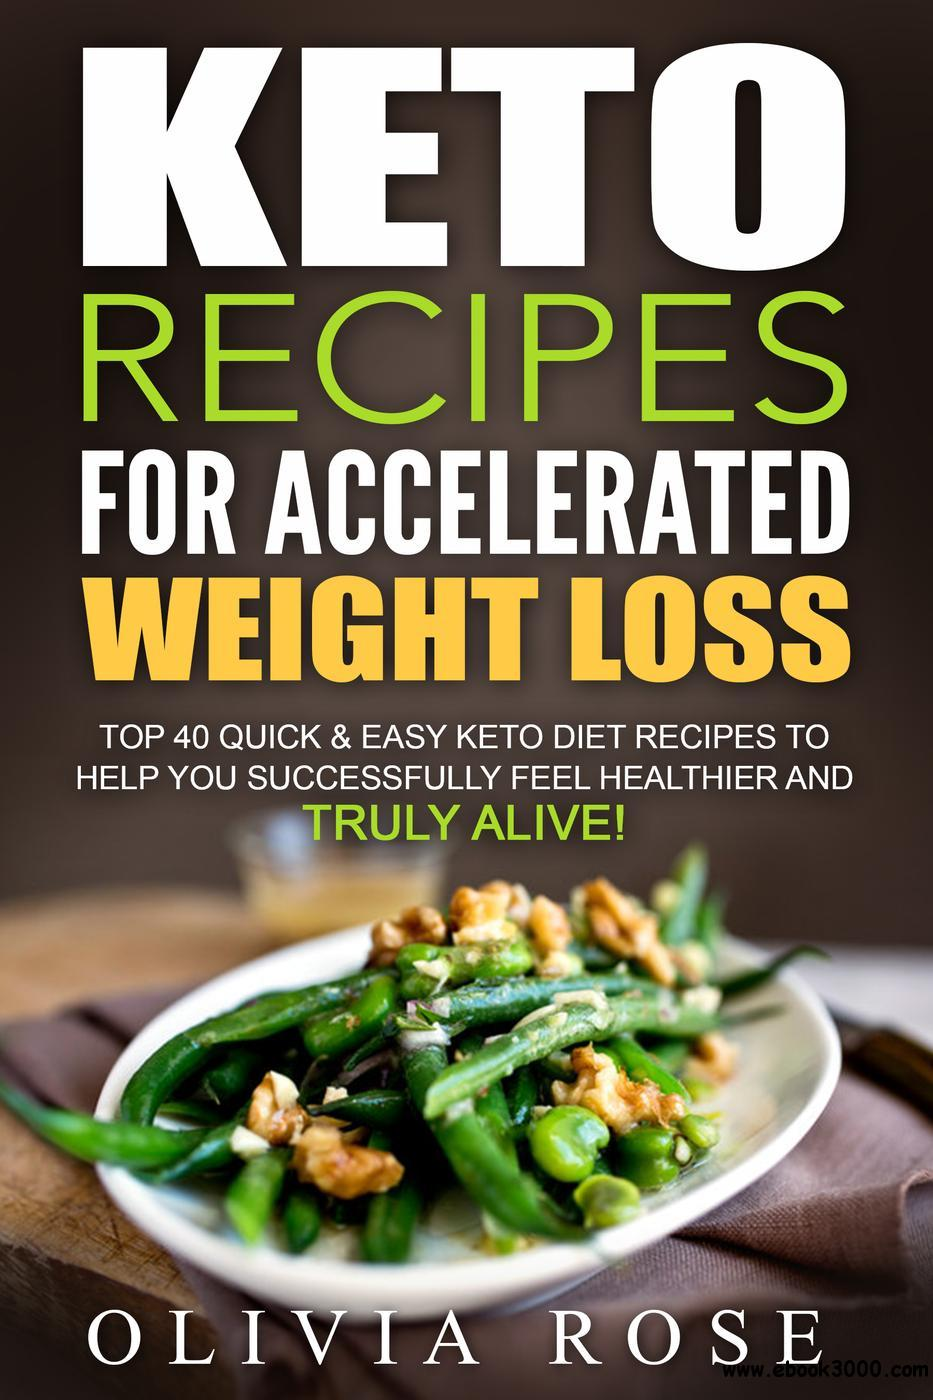 Keto recipes for accelerated weight loss top 40 quick easy keto keto recipes for accelerated weight loss top 40 quick easy keto diet recipes to forumfinder Images